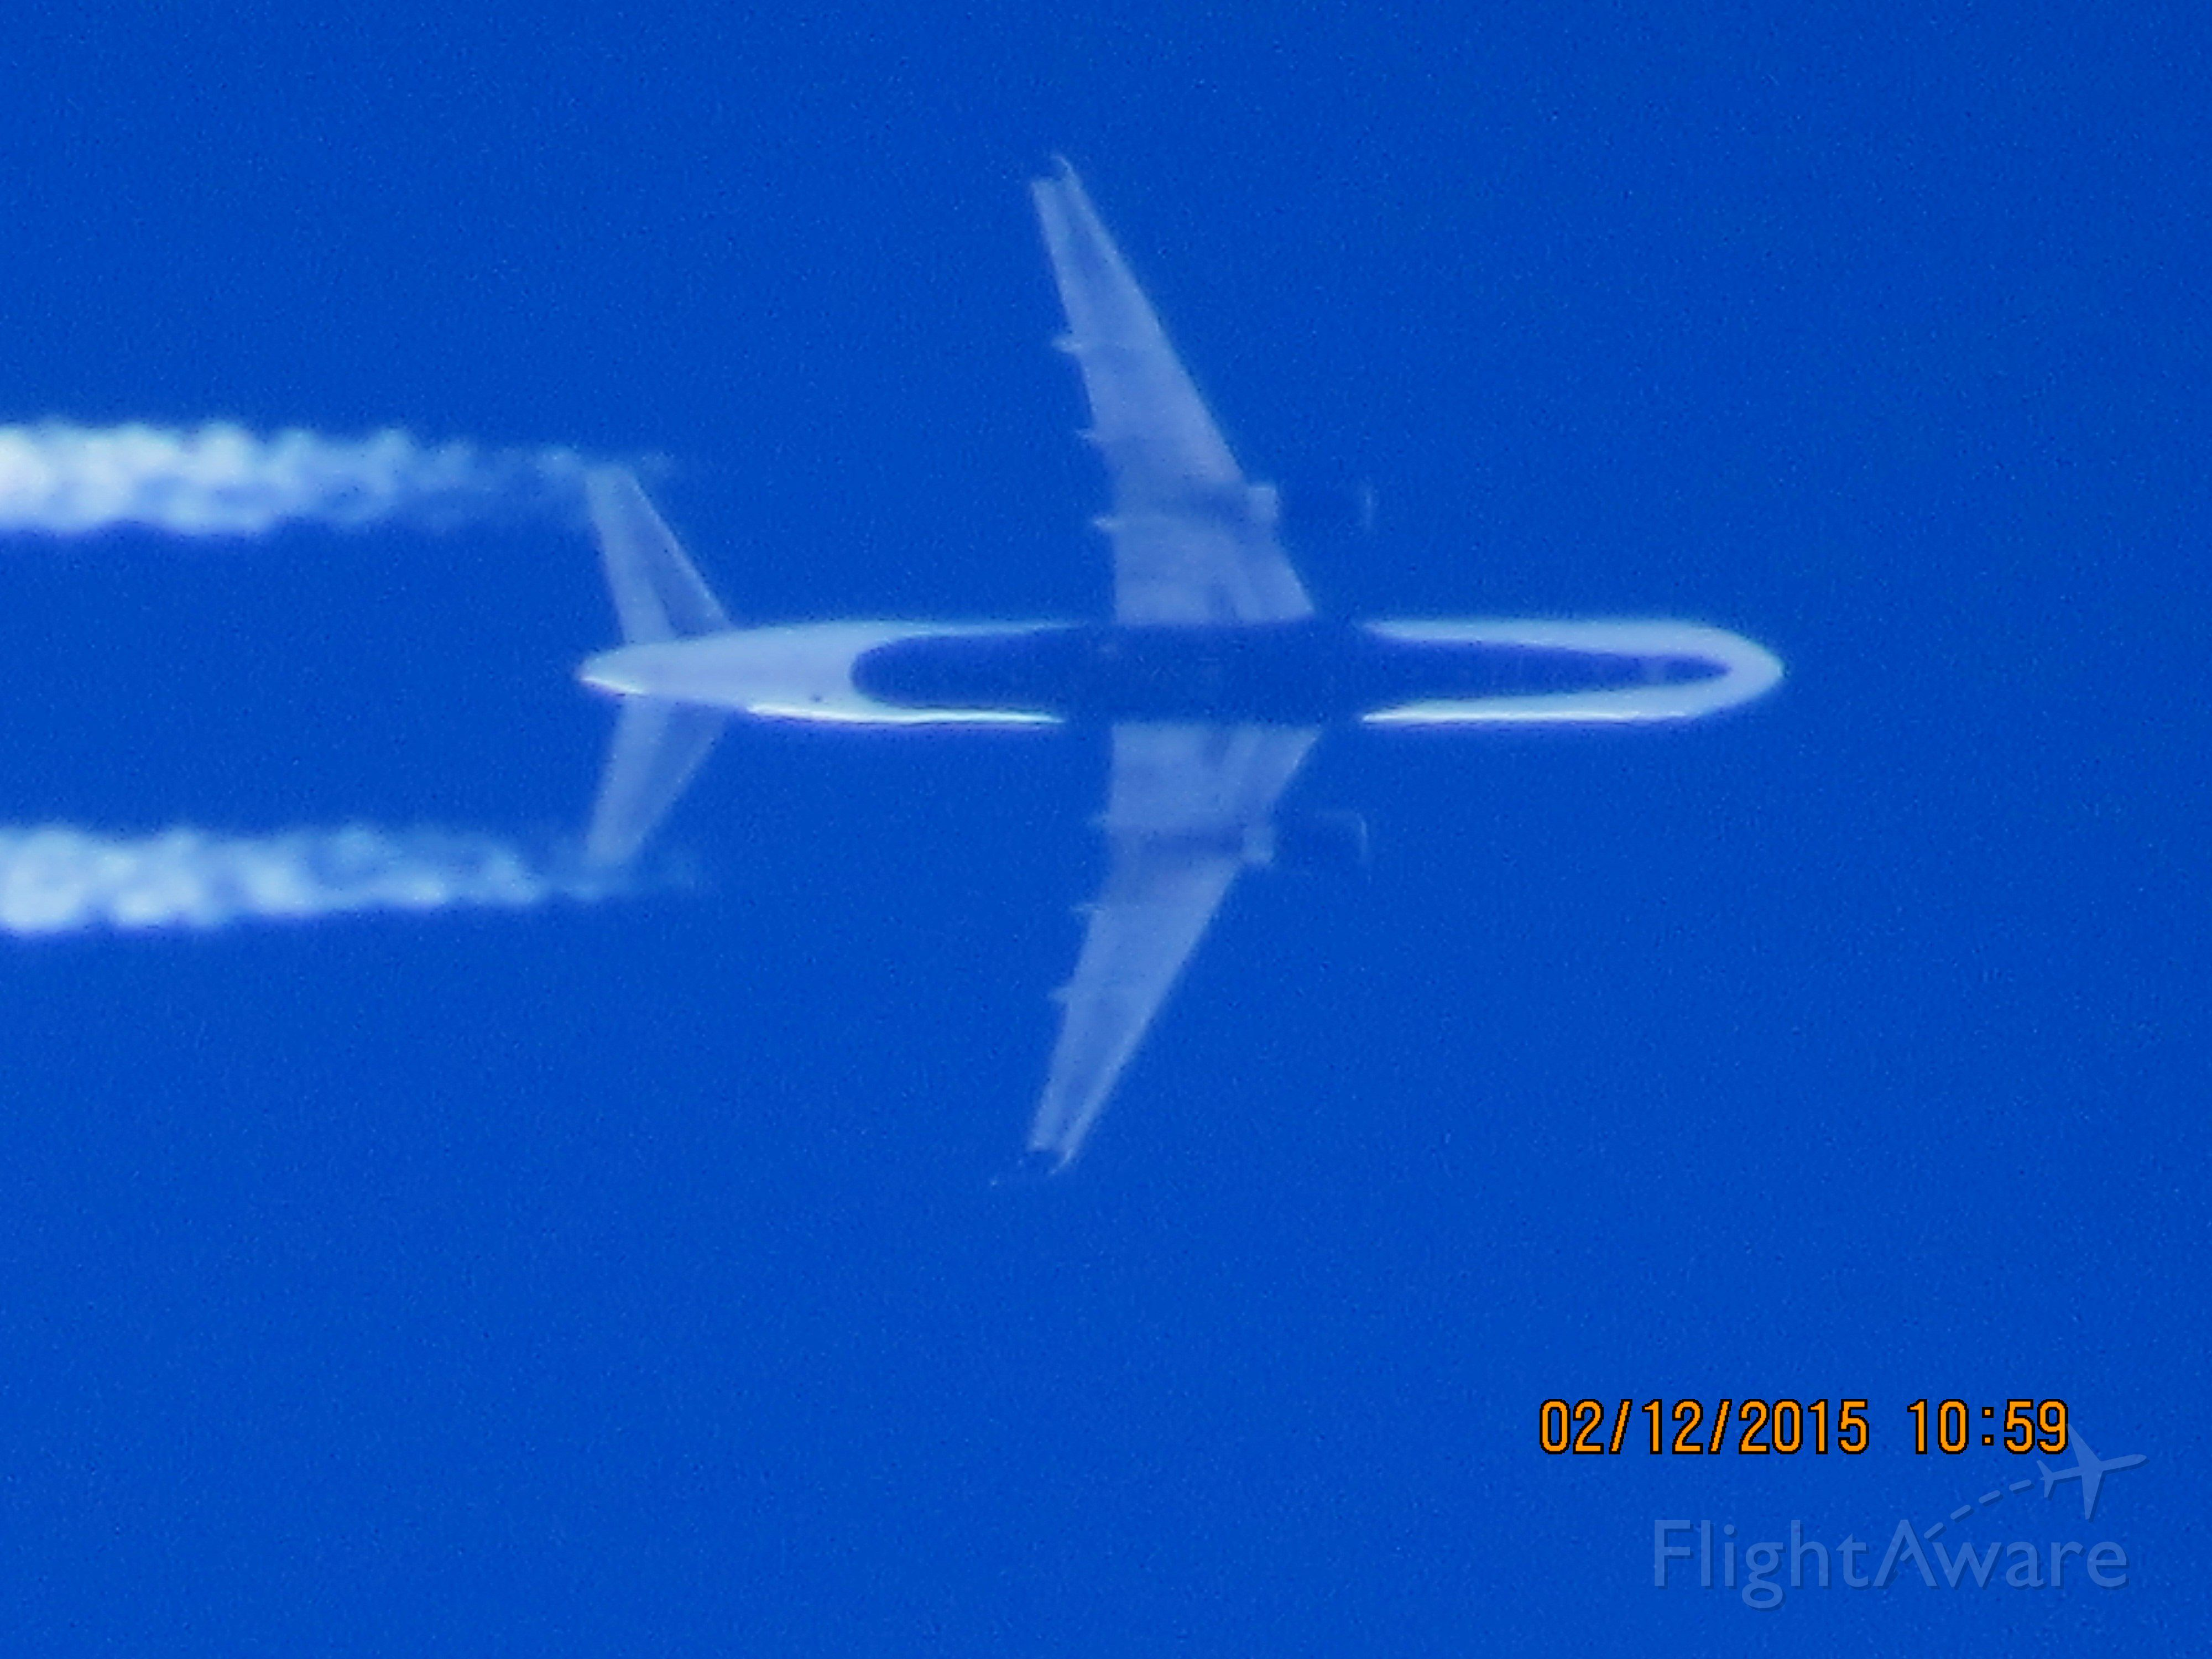 Boeing 757-200 (N664DN) - Delta Airlines flight 1172 from ATL to EGE over Southeastern Kansas at 38,000 feet.